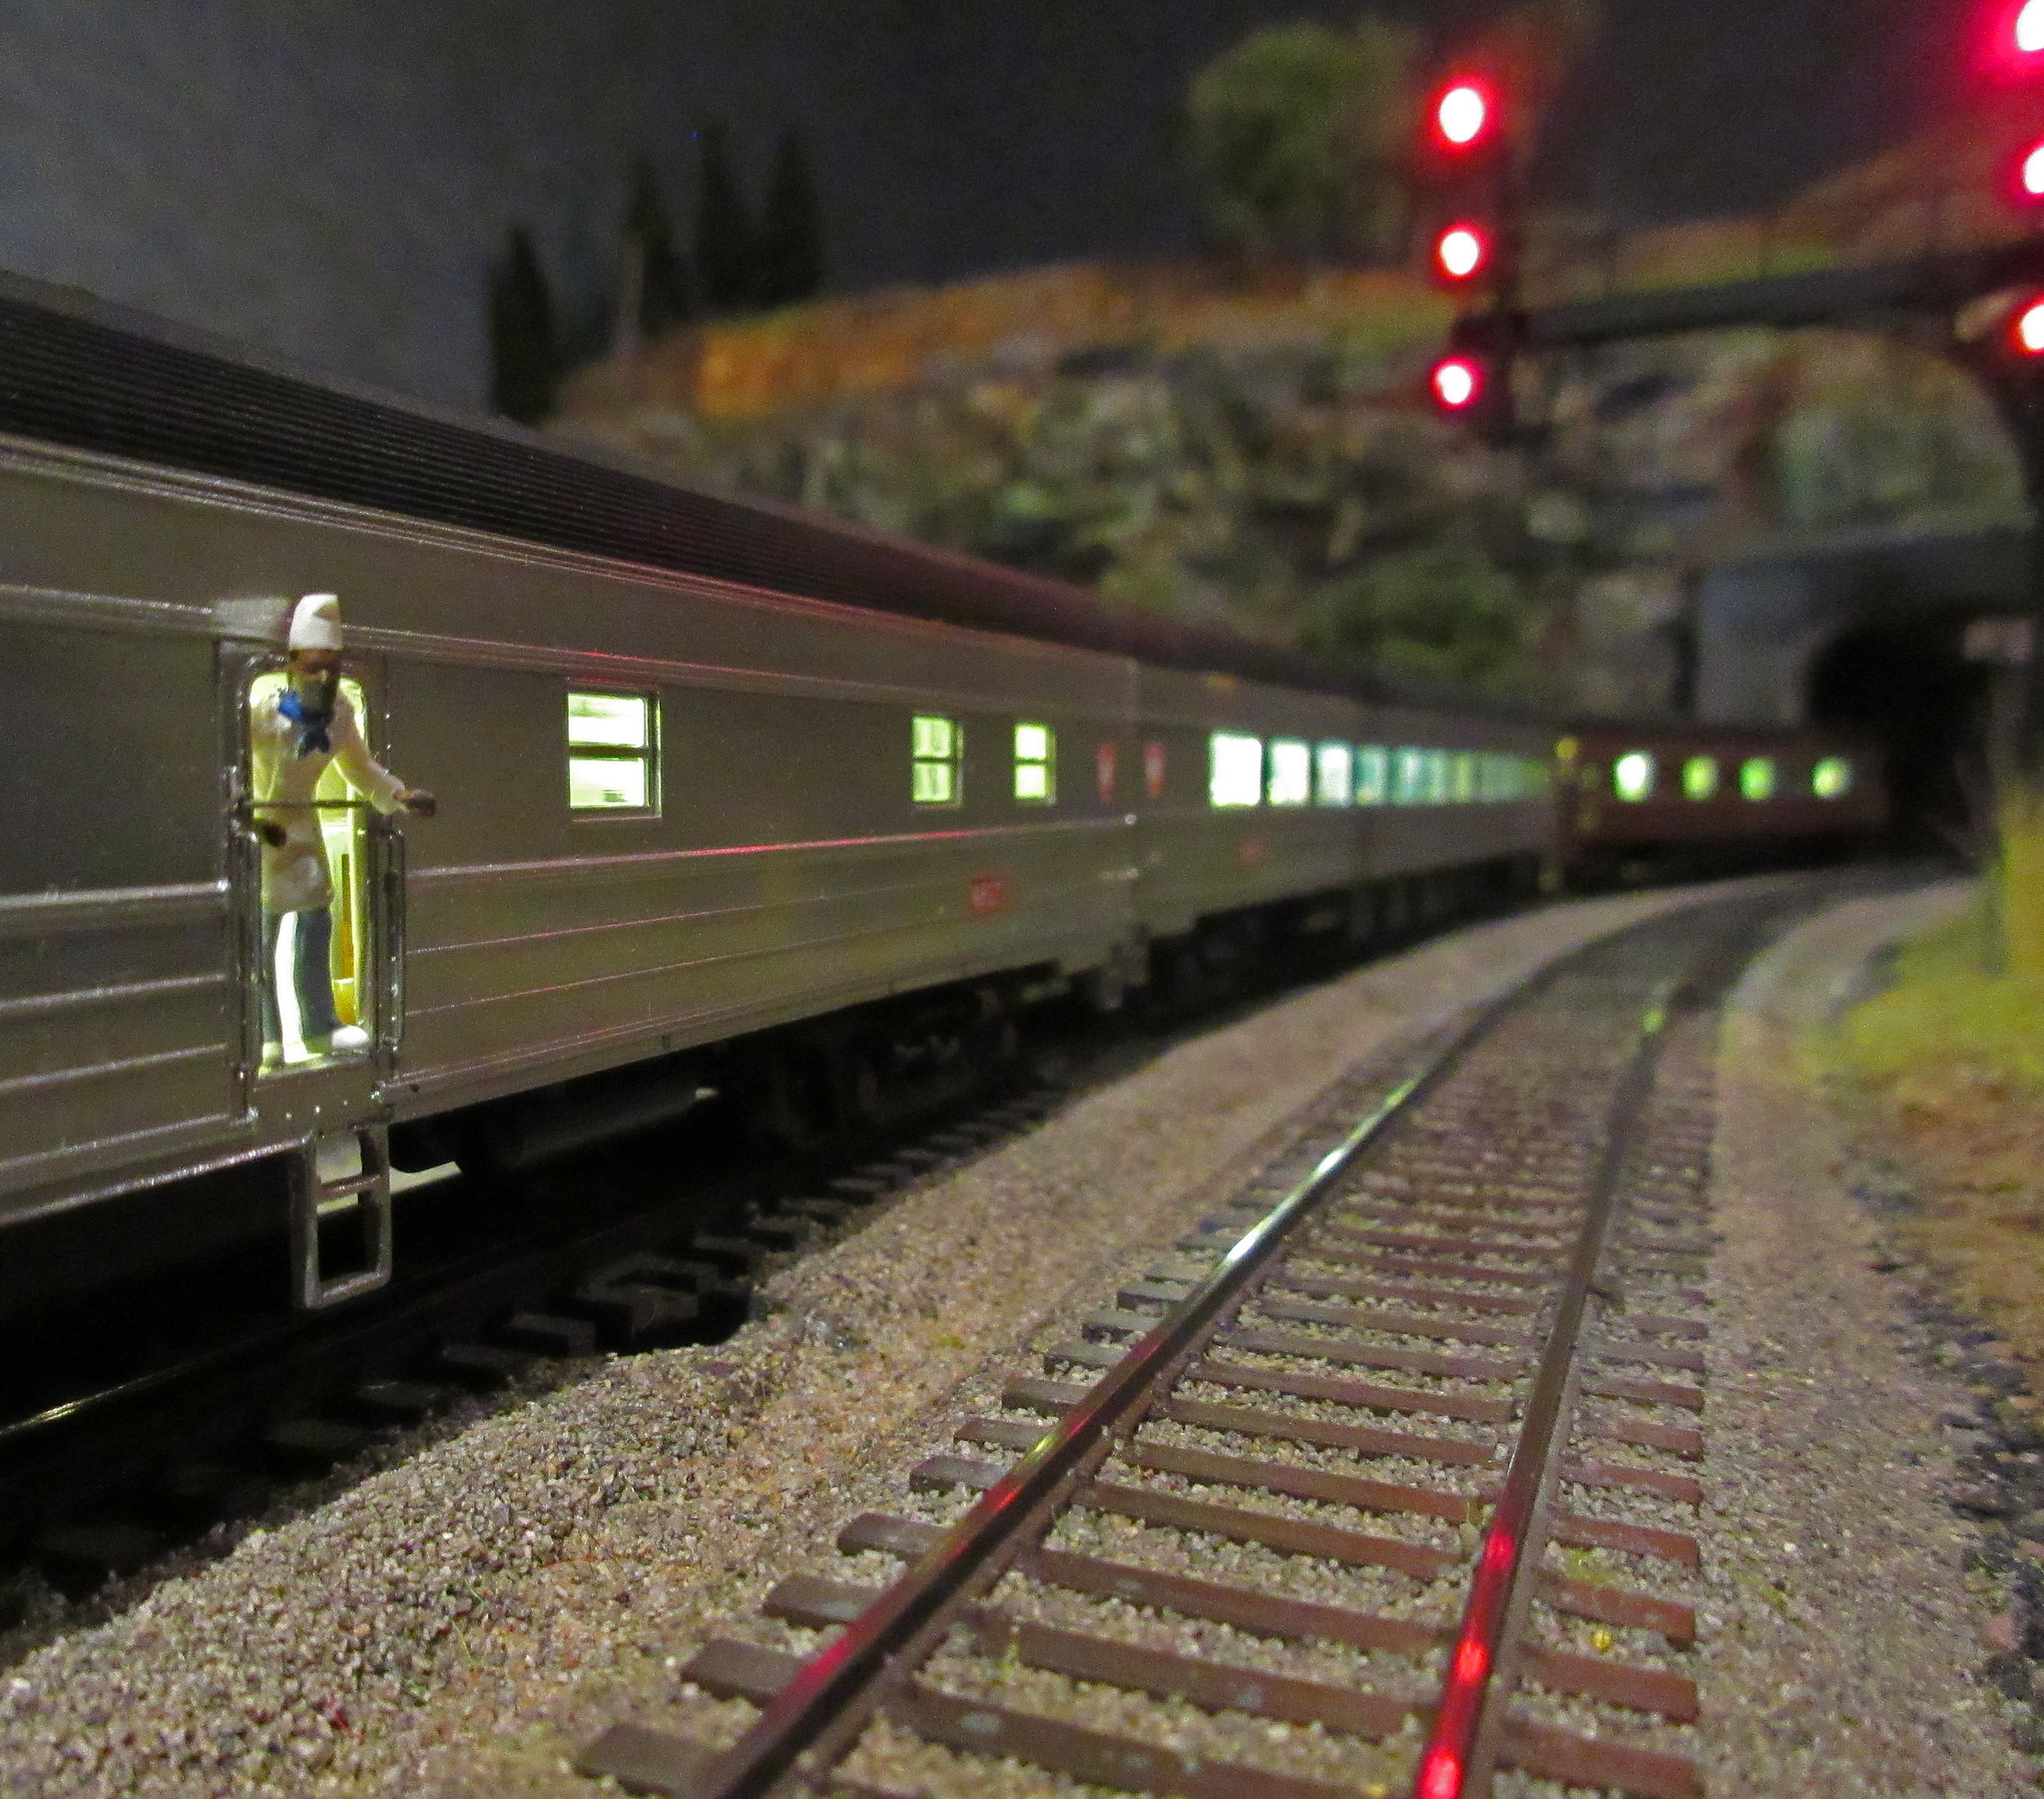 Signal lights - for show or operations? - Model Railroader